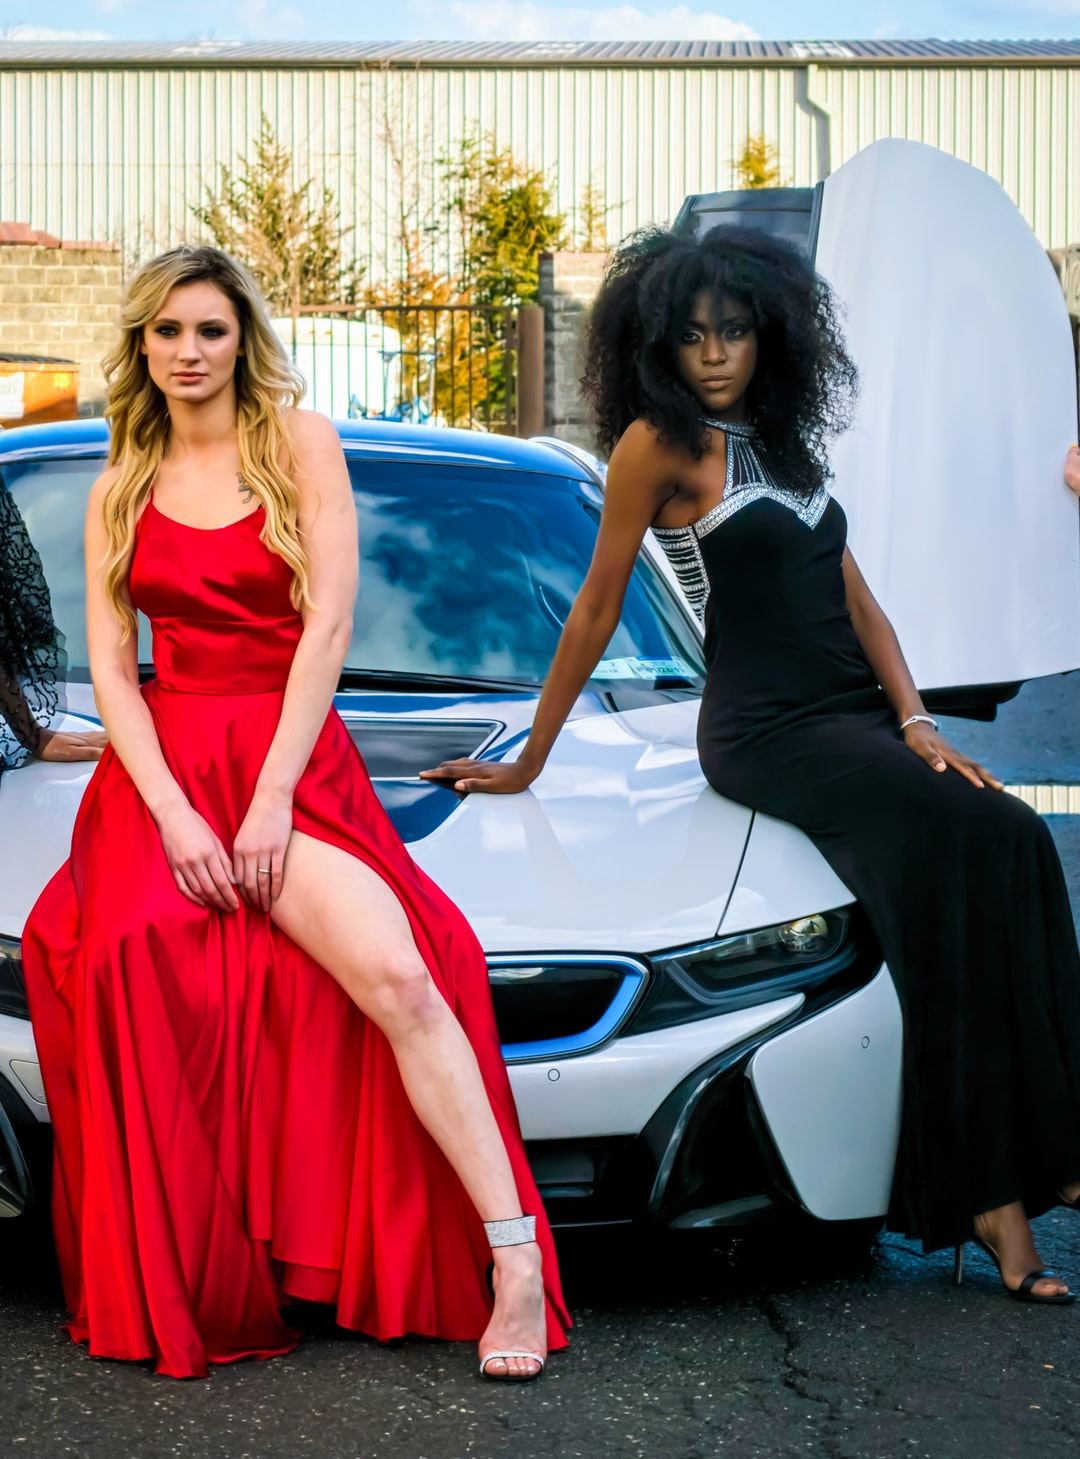 Two women in gowns sitting on a BMW. This was taken outside of a repair see shop in Sterling Virginia. This photoshoot was funded and managed by the models themselves.